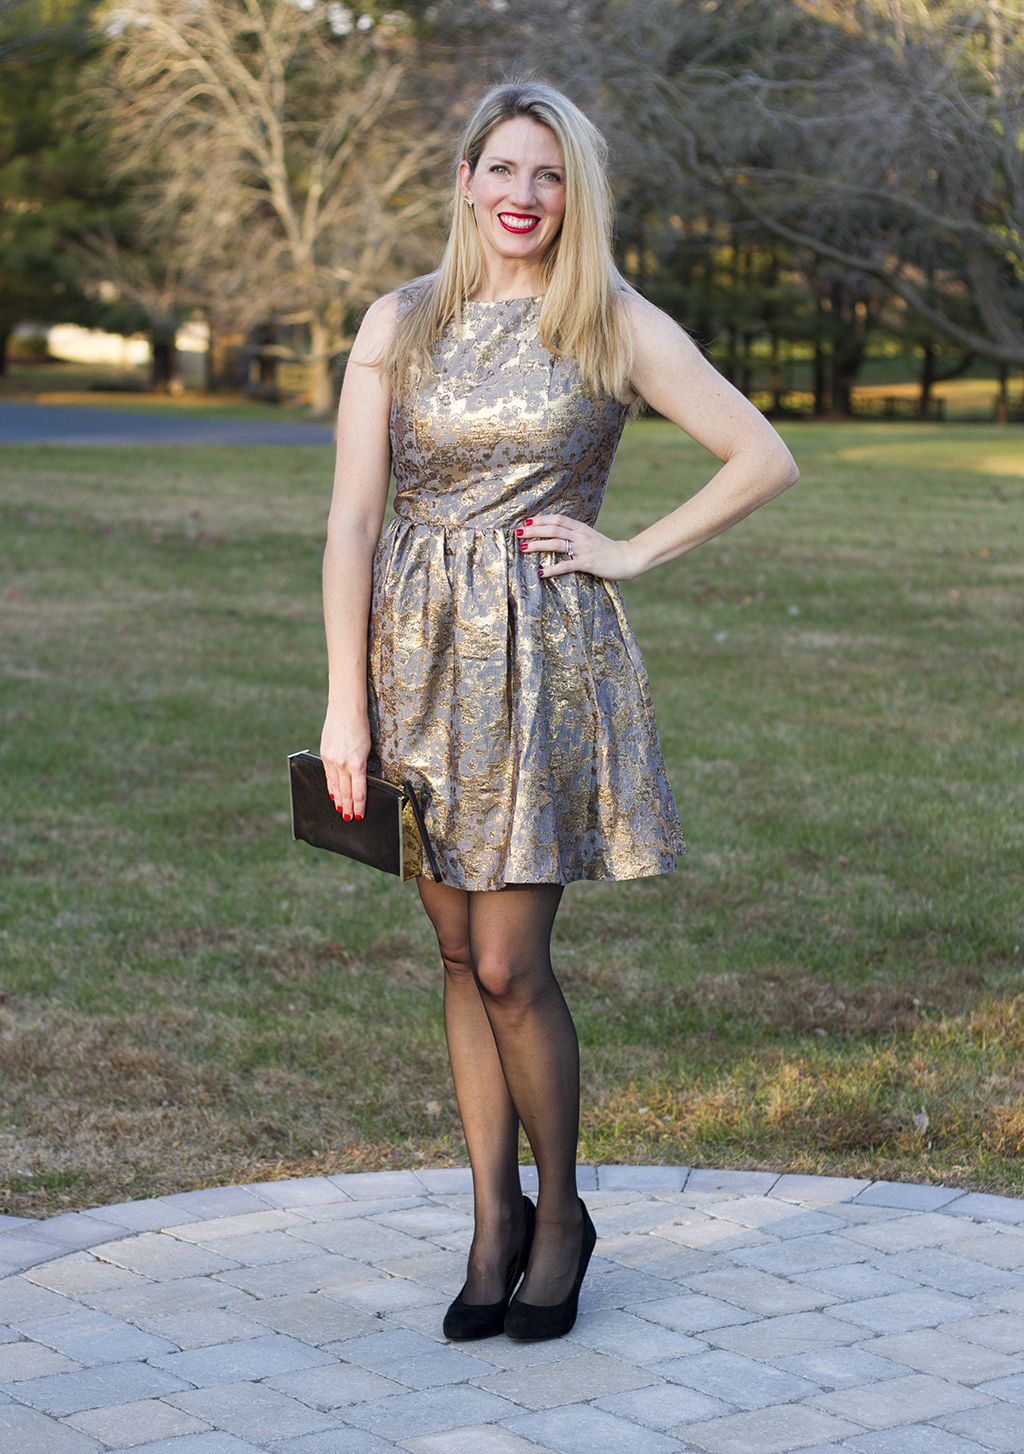 Metallic brocade make for a perfect holiday party outfit or New Year's Eve look!